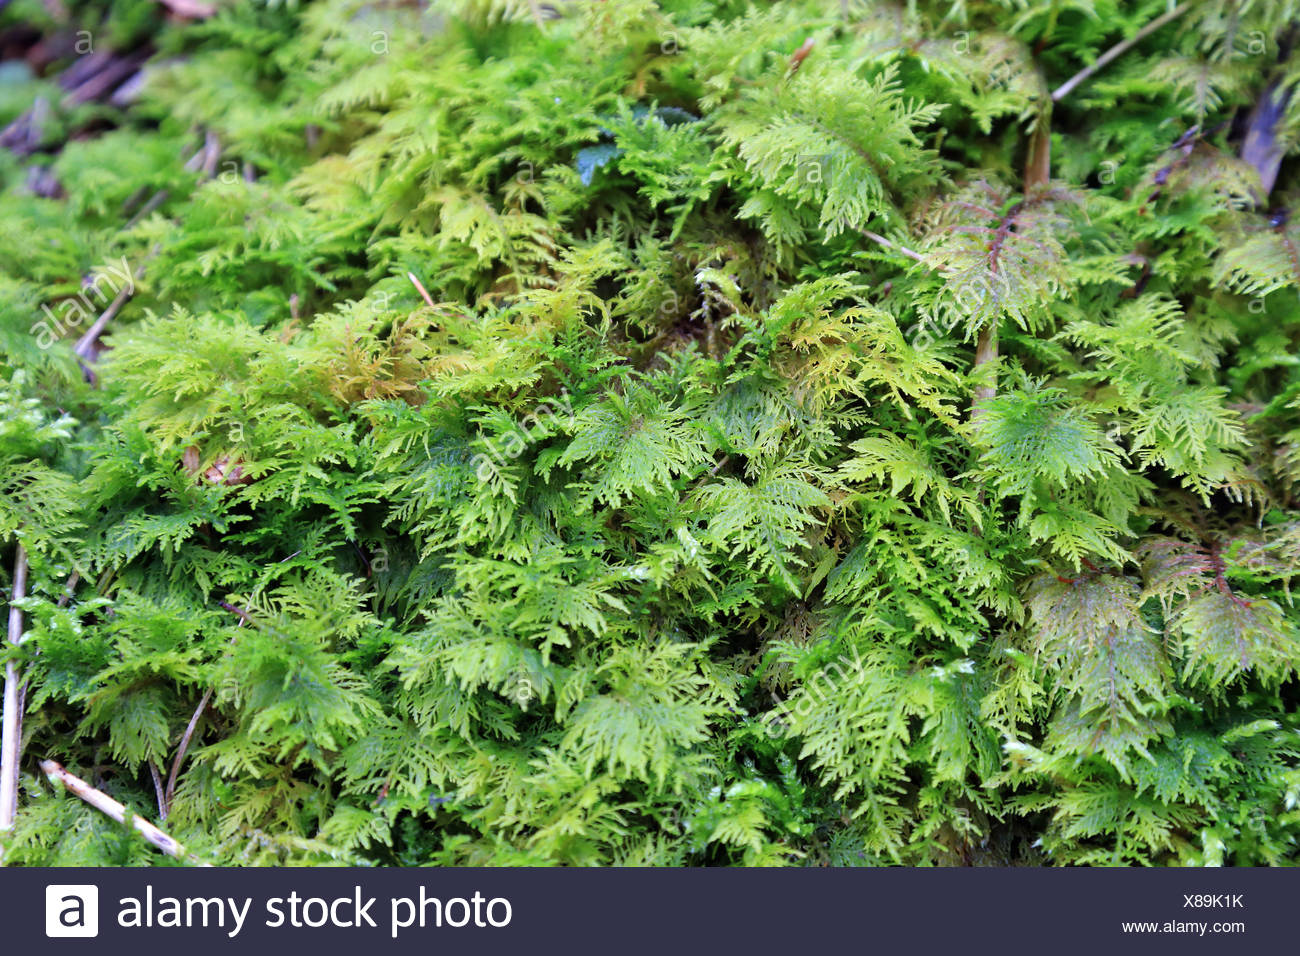 Moss on humid forest soil - Stock Image